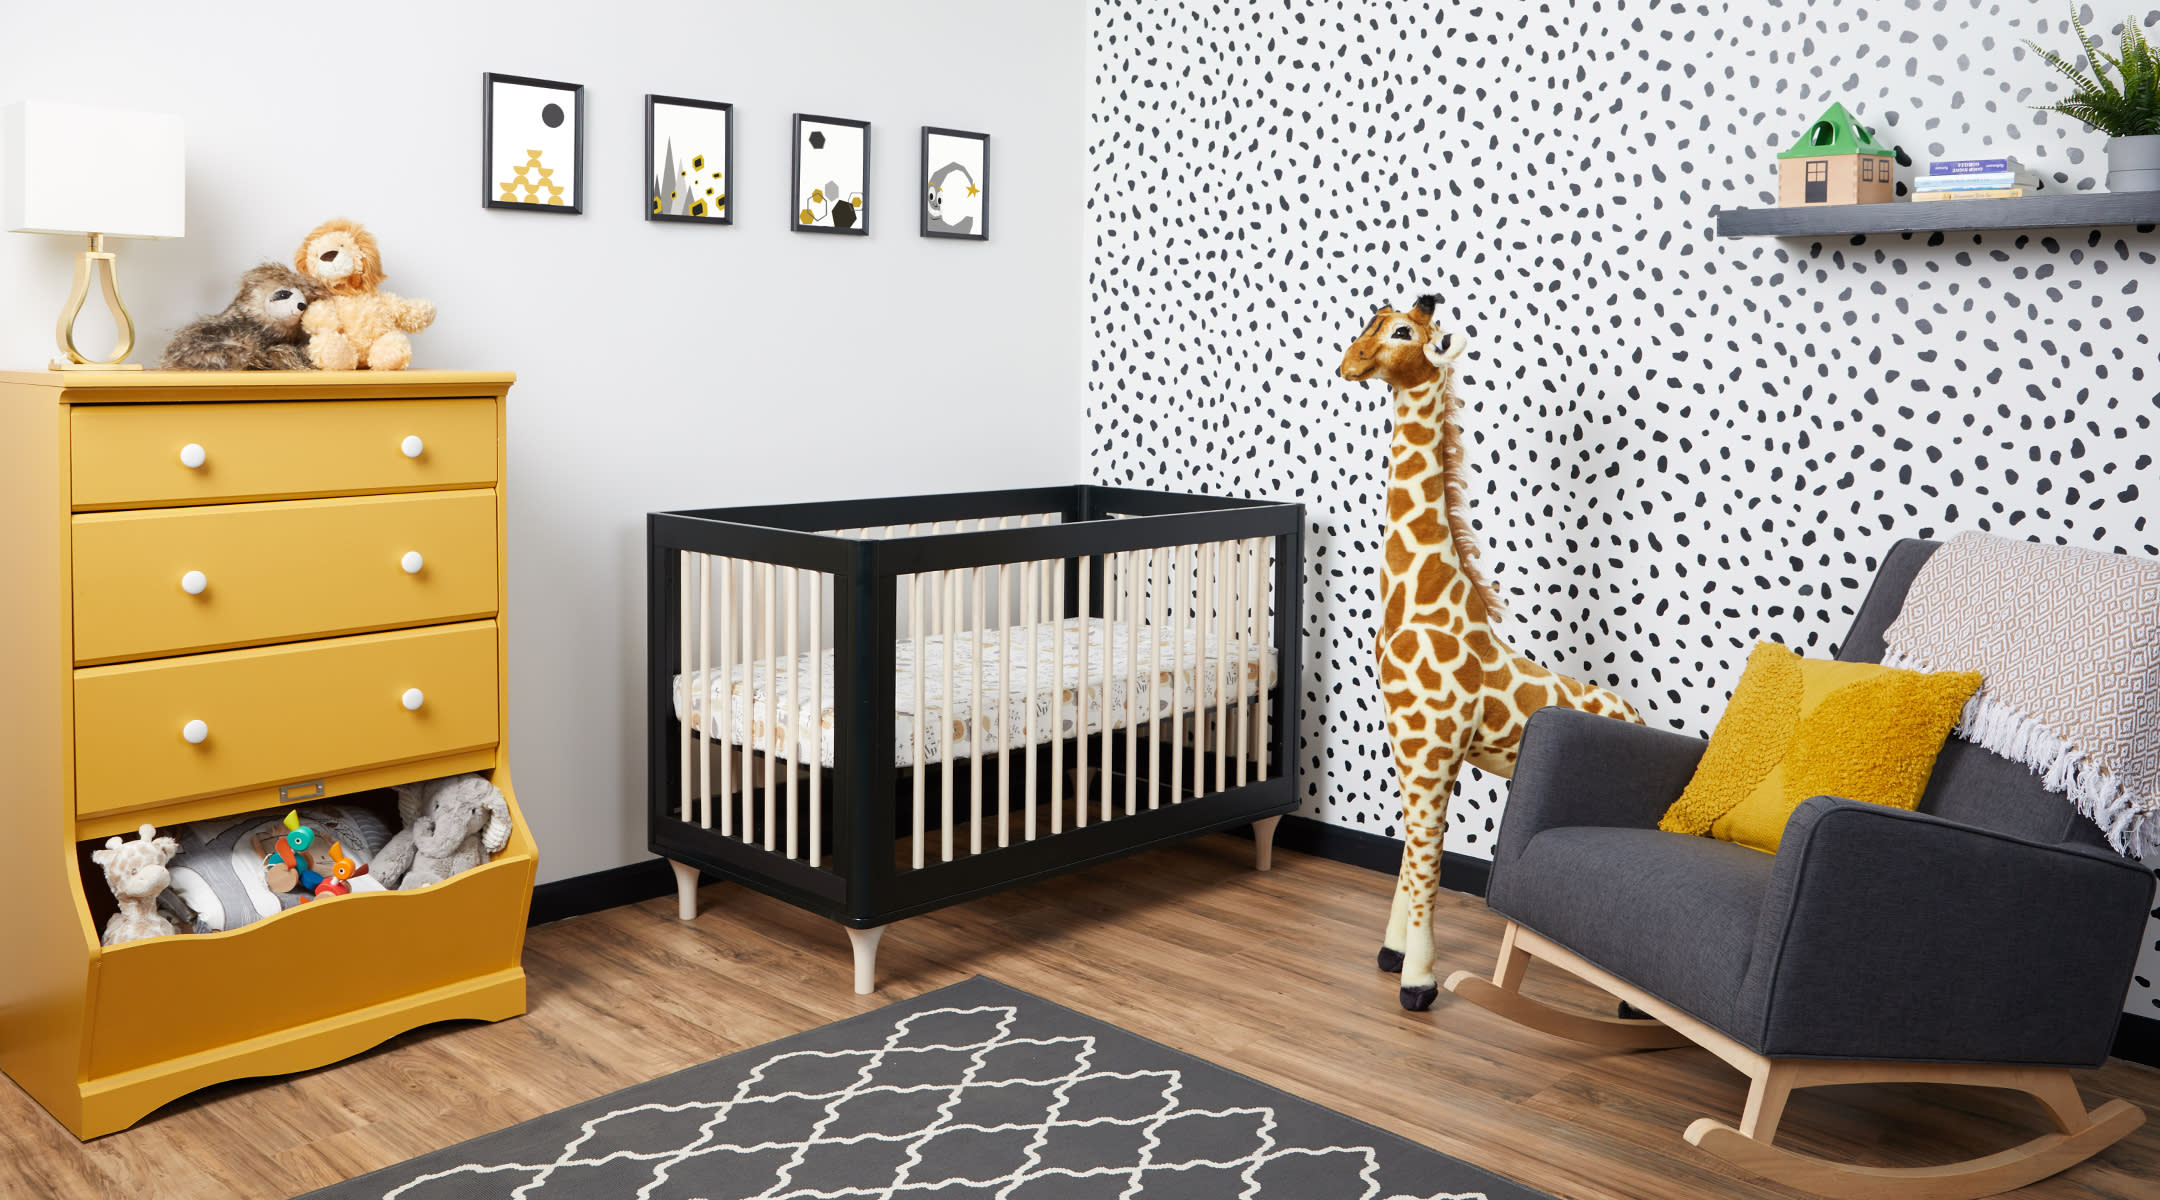 See These Gender-Neutral Nursery Designs Come to Life